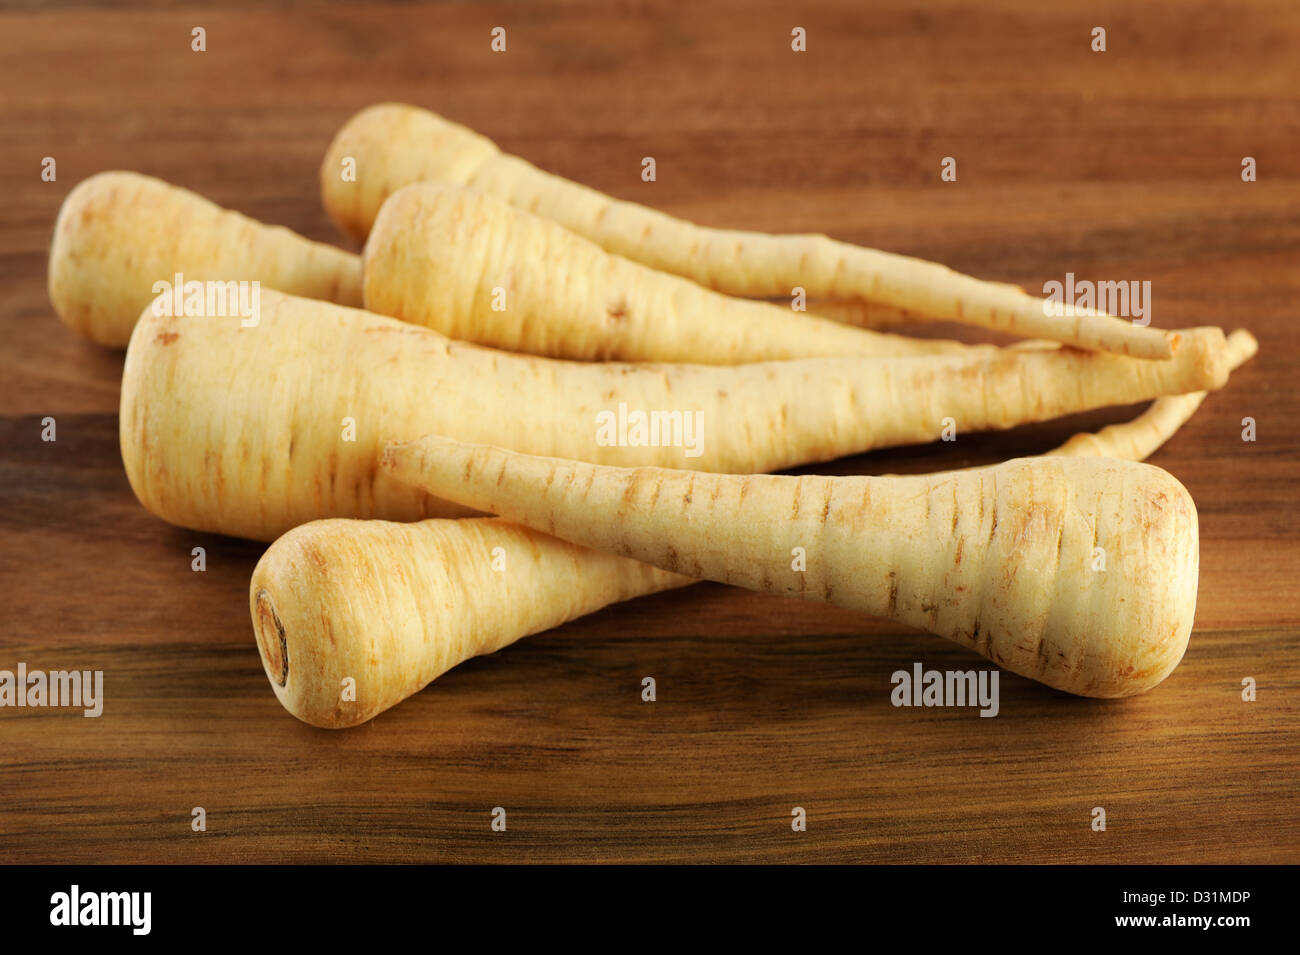 Parsnip on a wooden background, selective focus. - Stock Image